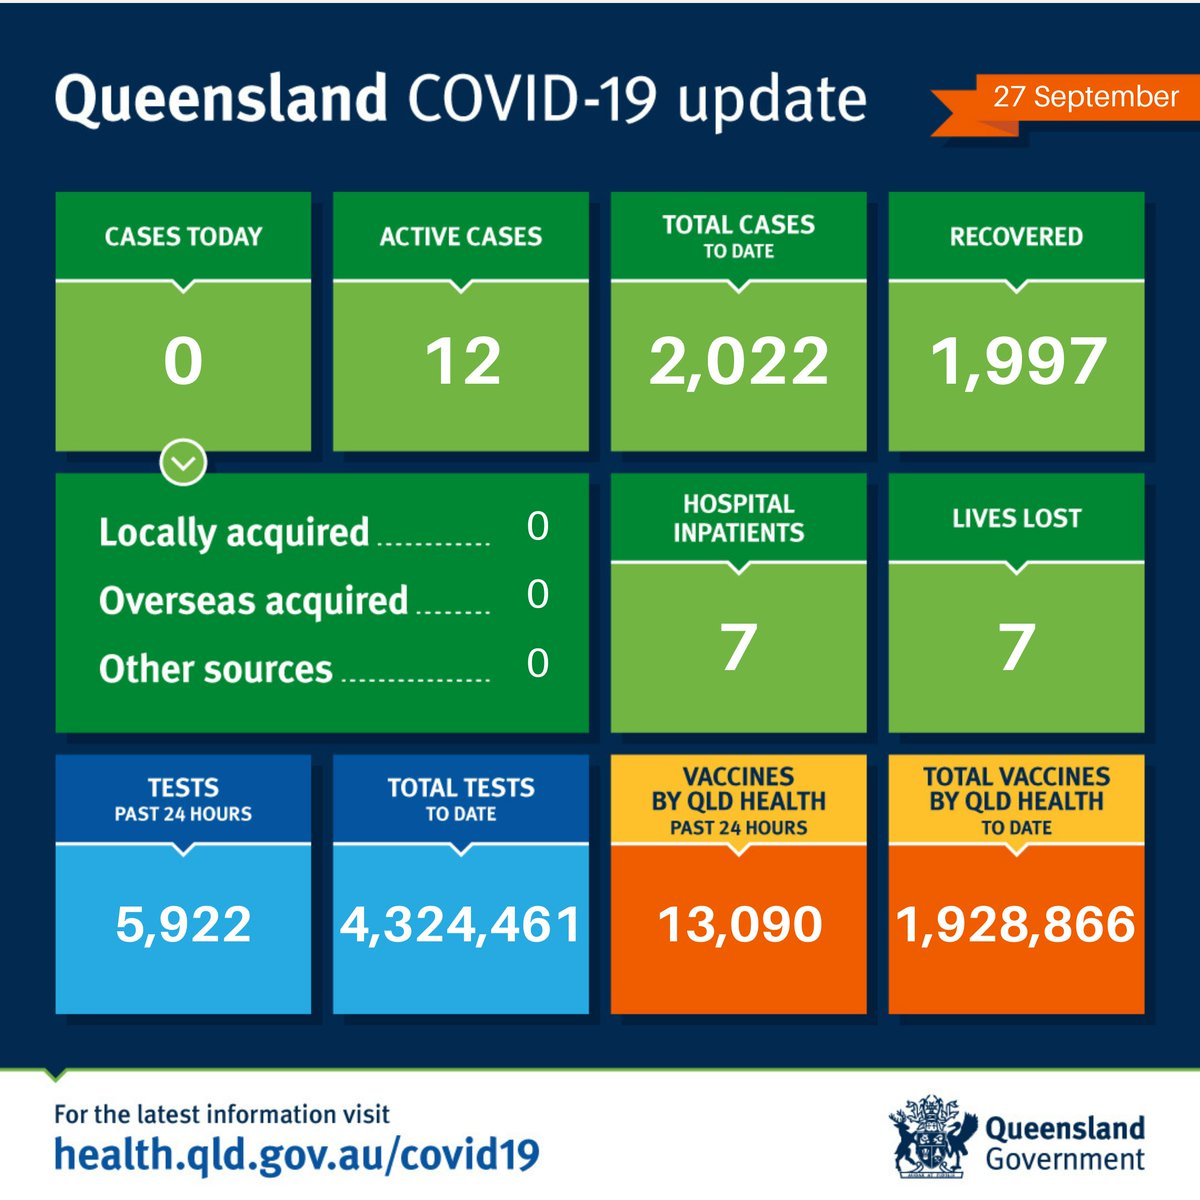 Queensland #COVID19 update 27/09/21 Today we have recorded 0 new cases of COVID-19. Detailed information about COVID-19 cases in Queensland, can be found here: health.qld.gov.au/covid-data